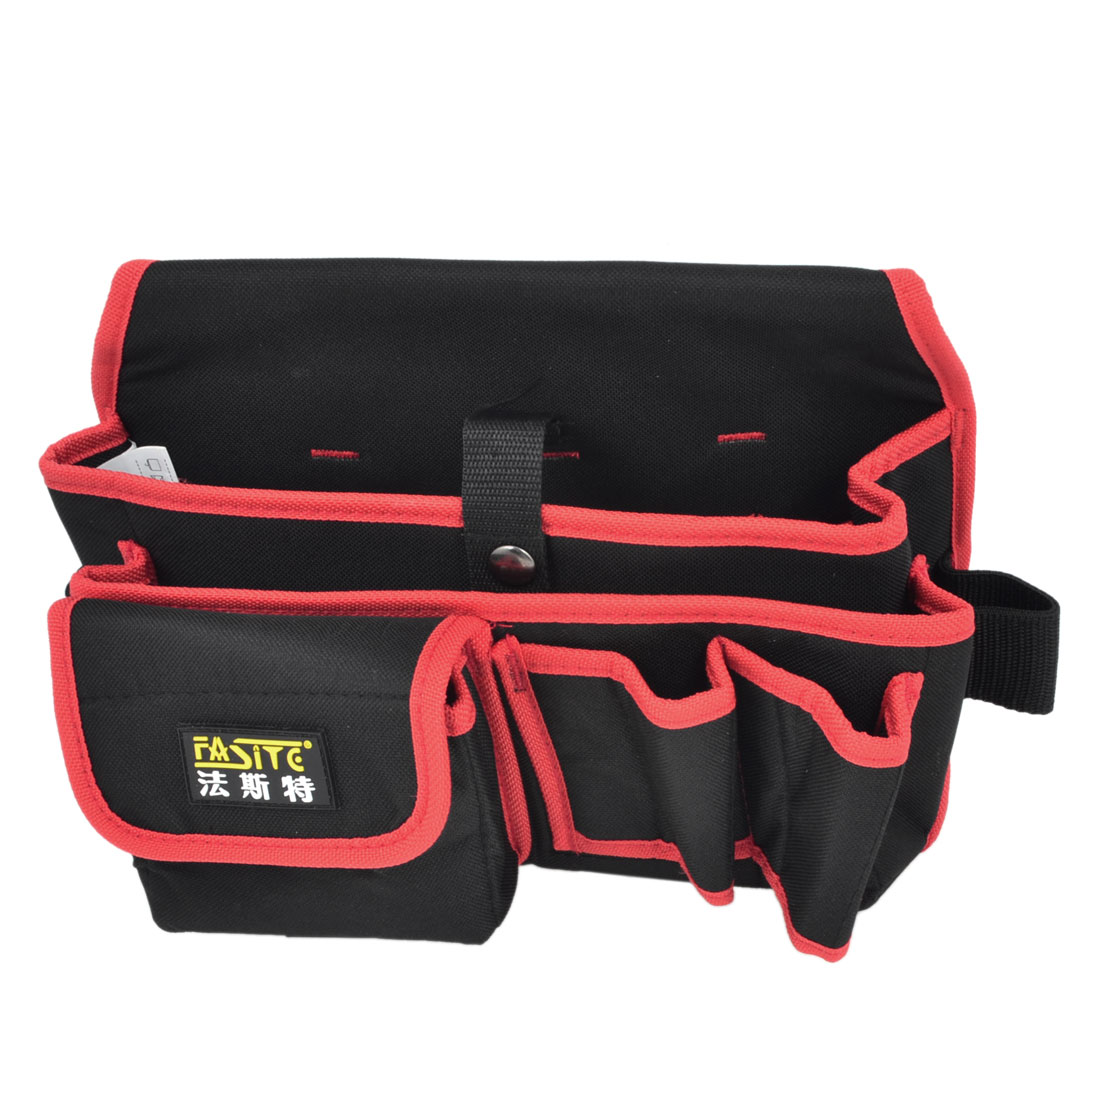 Black Red Canvas Electrician Tool Organizer Waist Bag Pouch